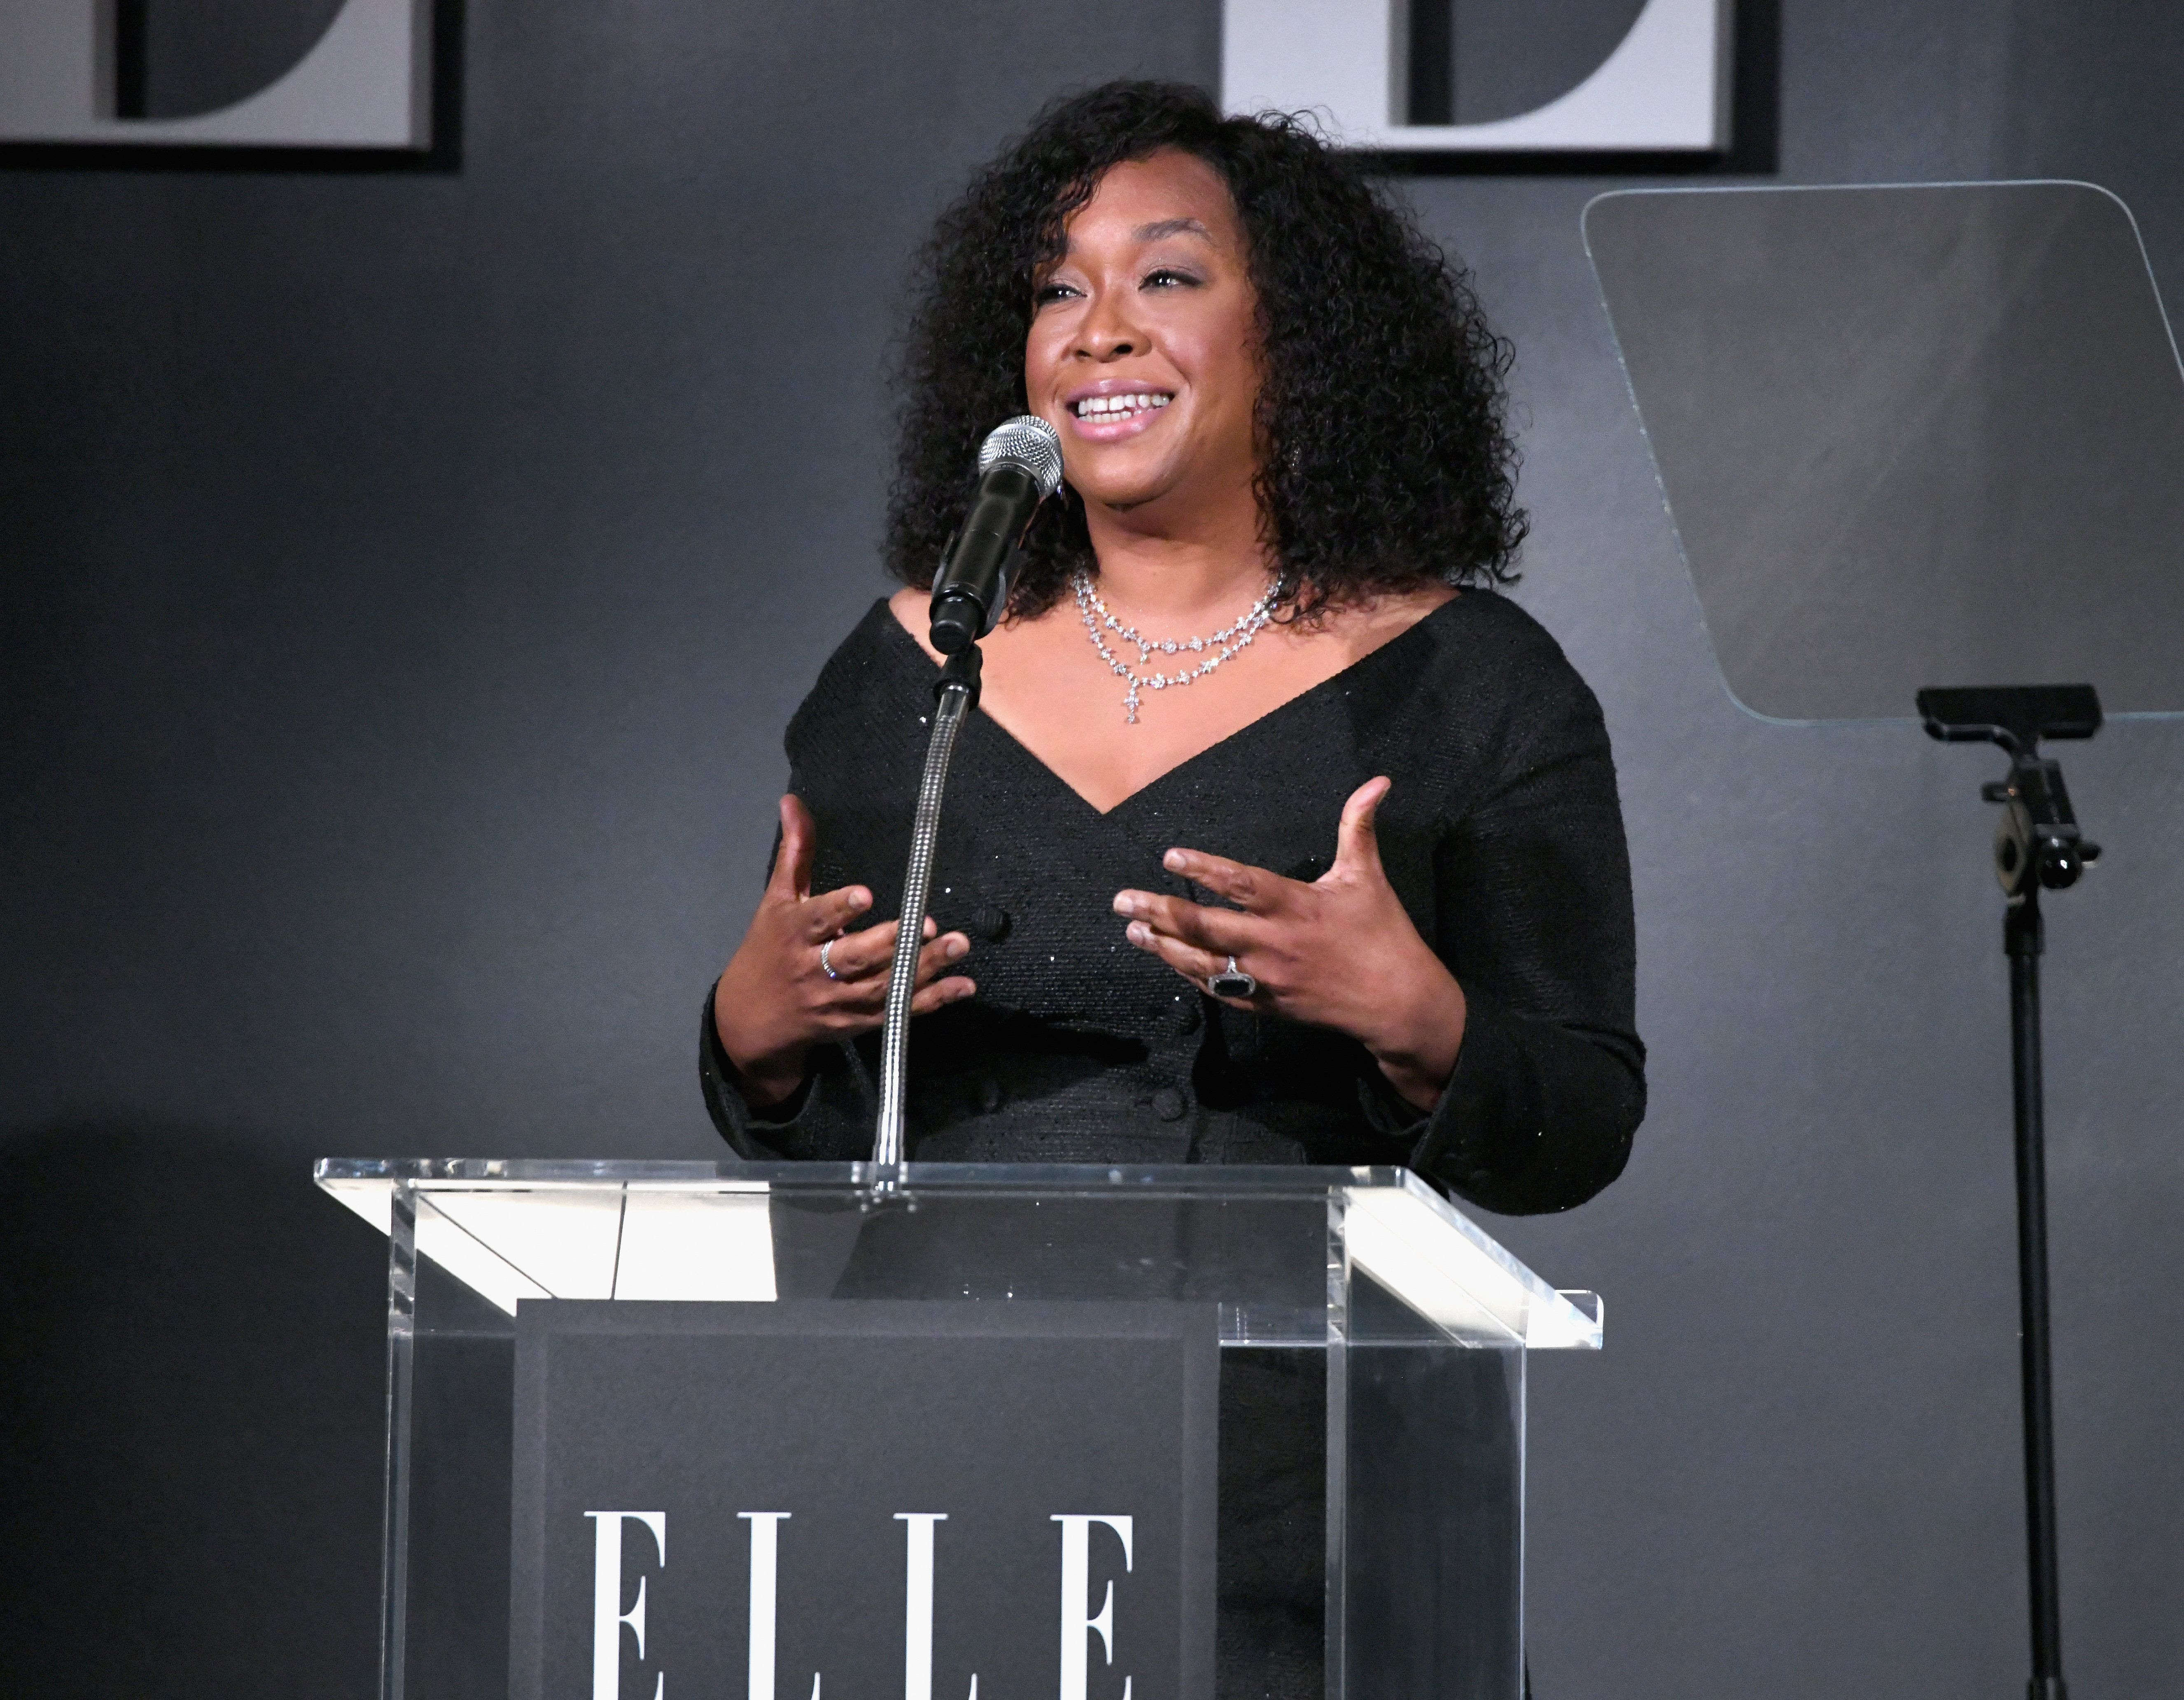 Showrunner Shonda Rhimes recently inked a major deal with Netflix.